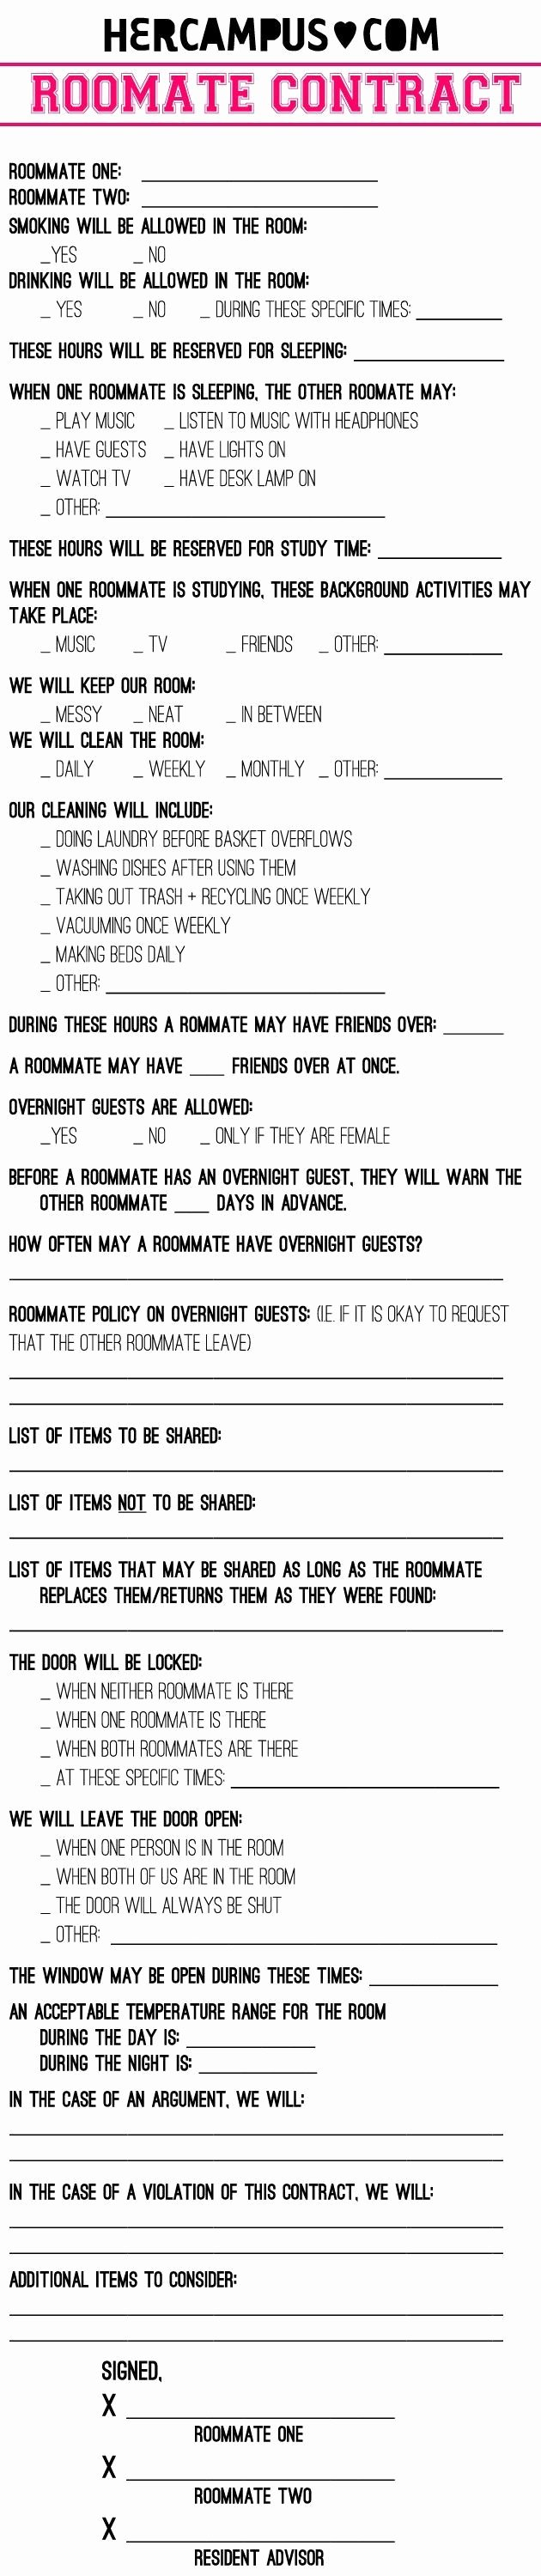 Roommate Chore Chart Template Elegant 24 Best Roommate Chore Charts Images On Pinterest